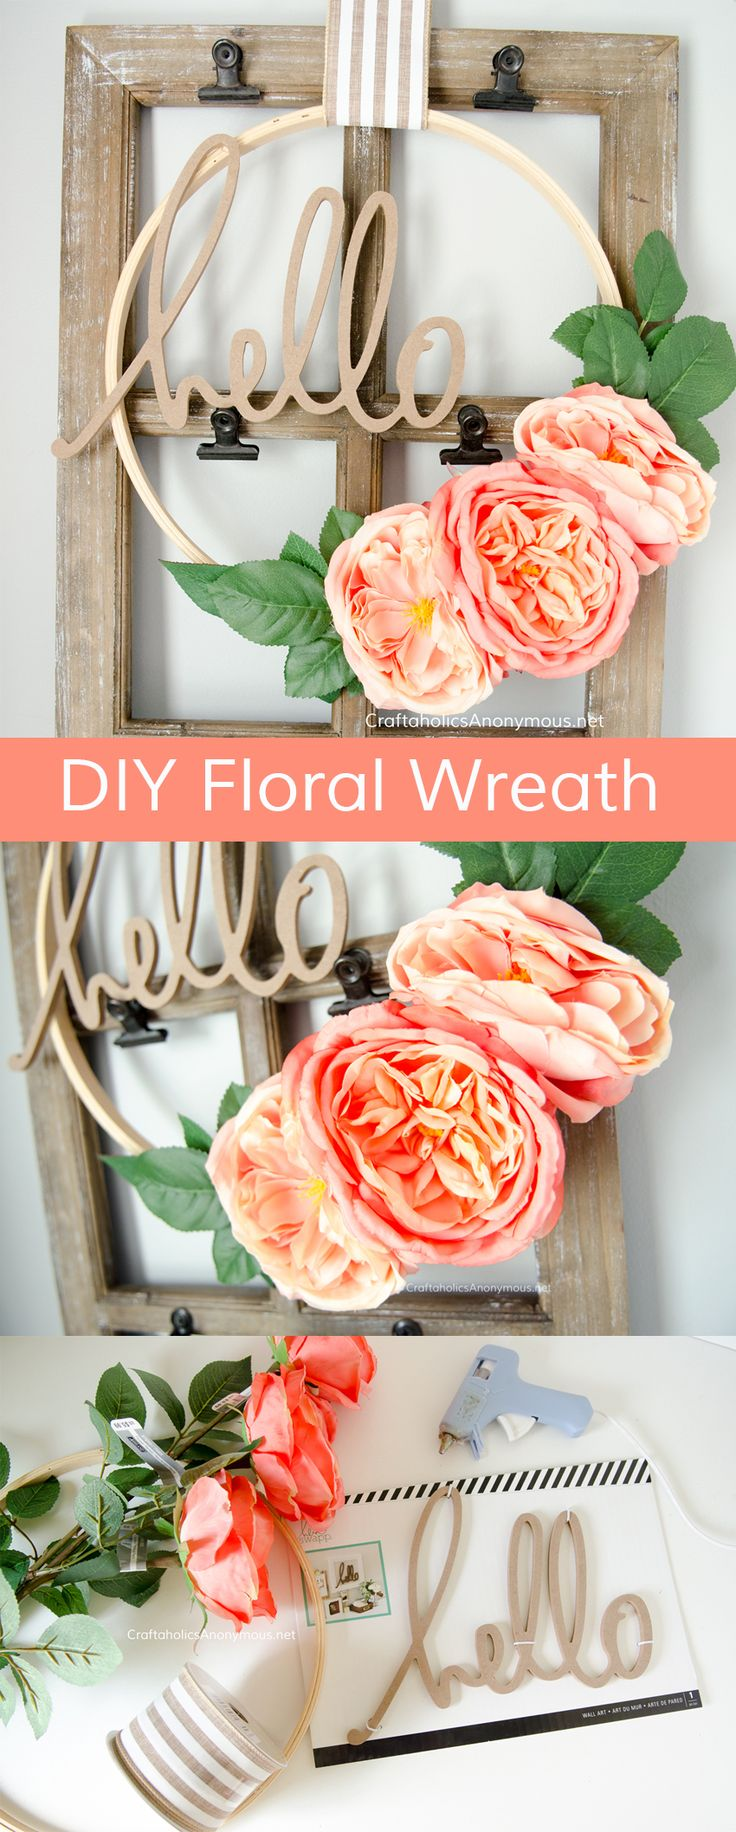 Another design idea with flowers. We love the floral tutorial, its simple and gi...